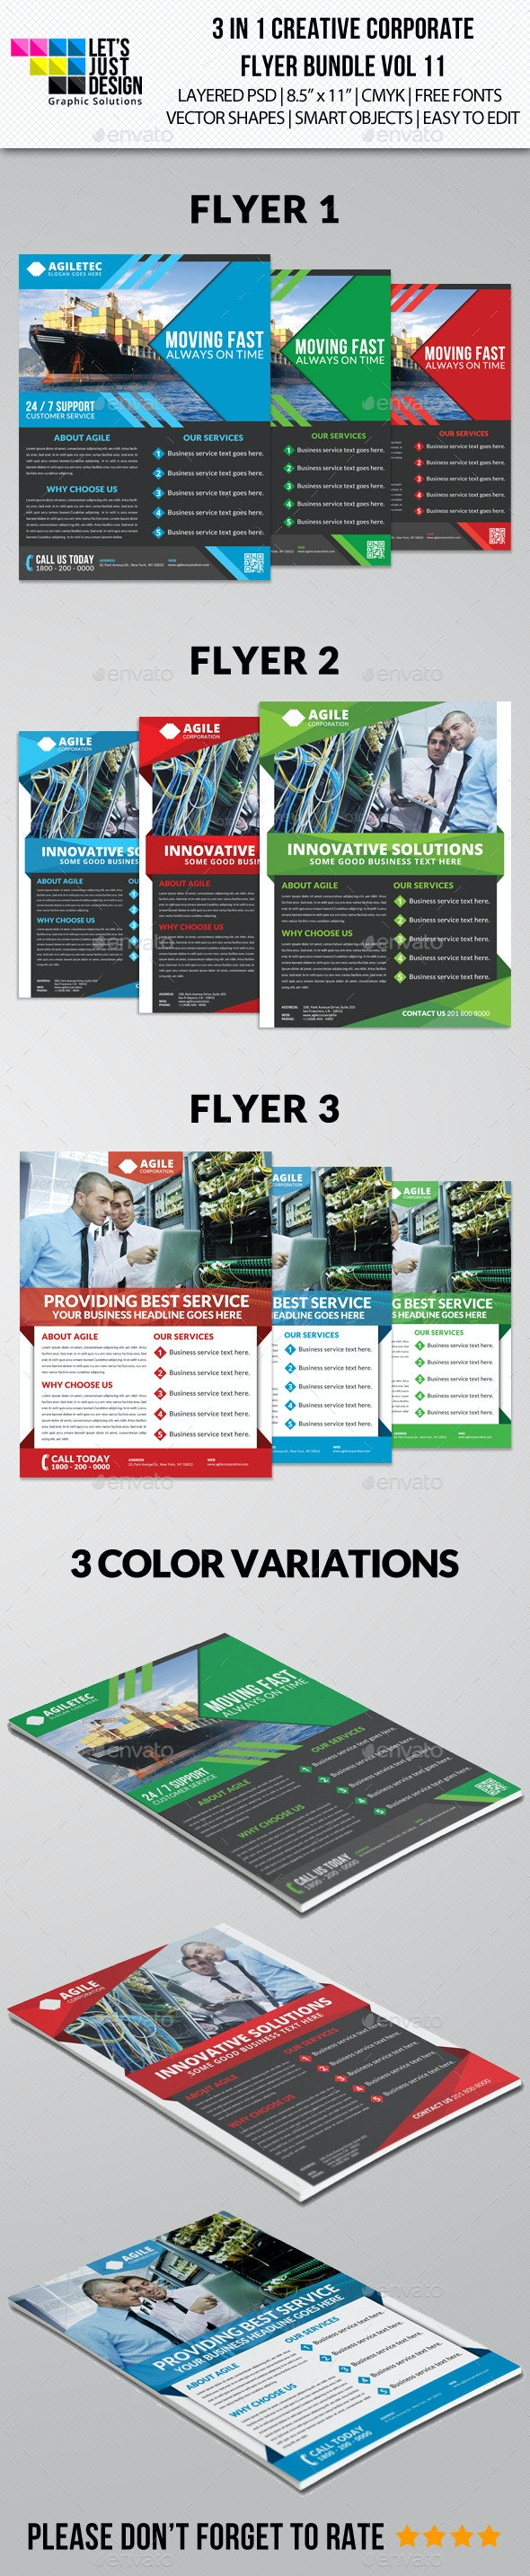 Creative Corporate Flyer Pack Vol 11 - Corporate Flyers